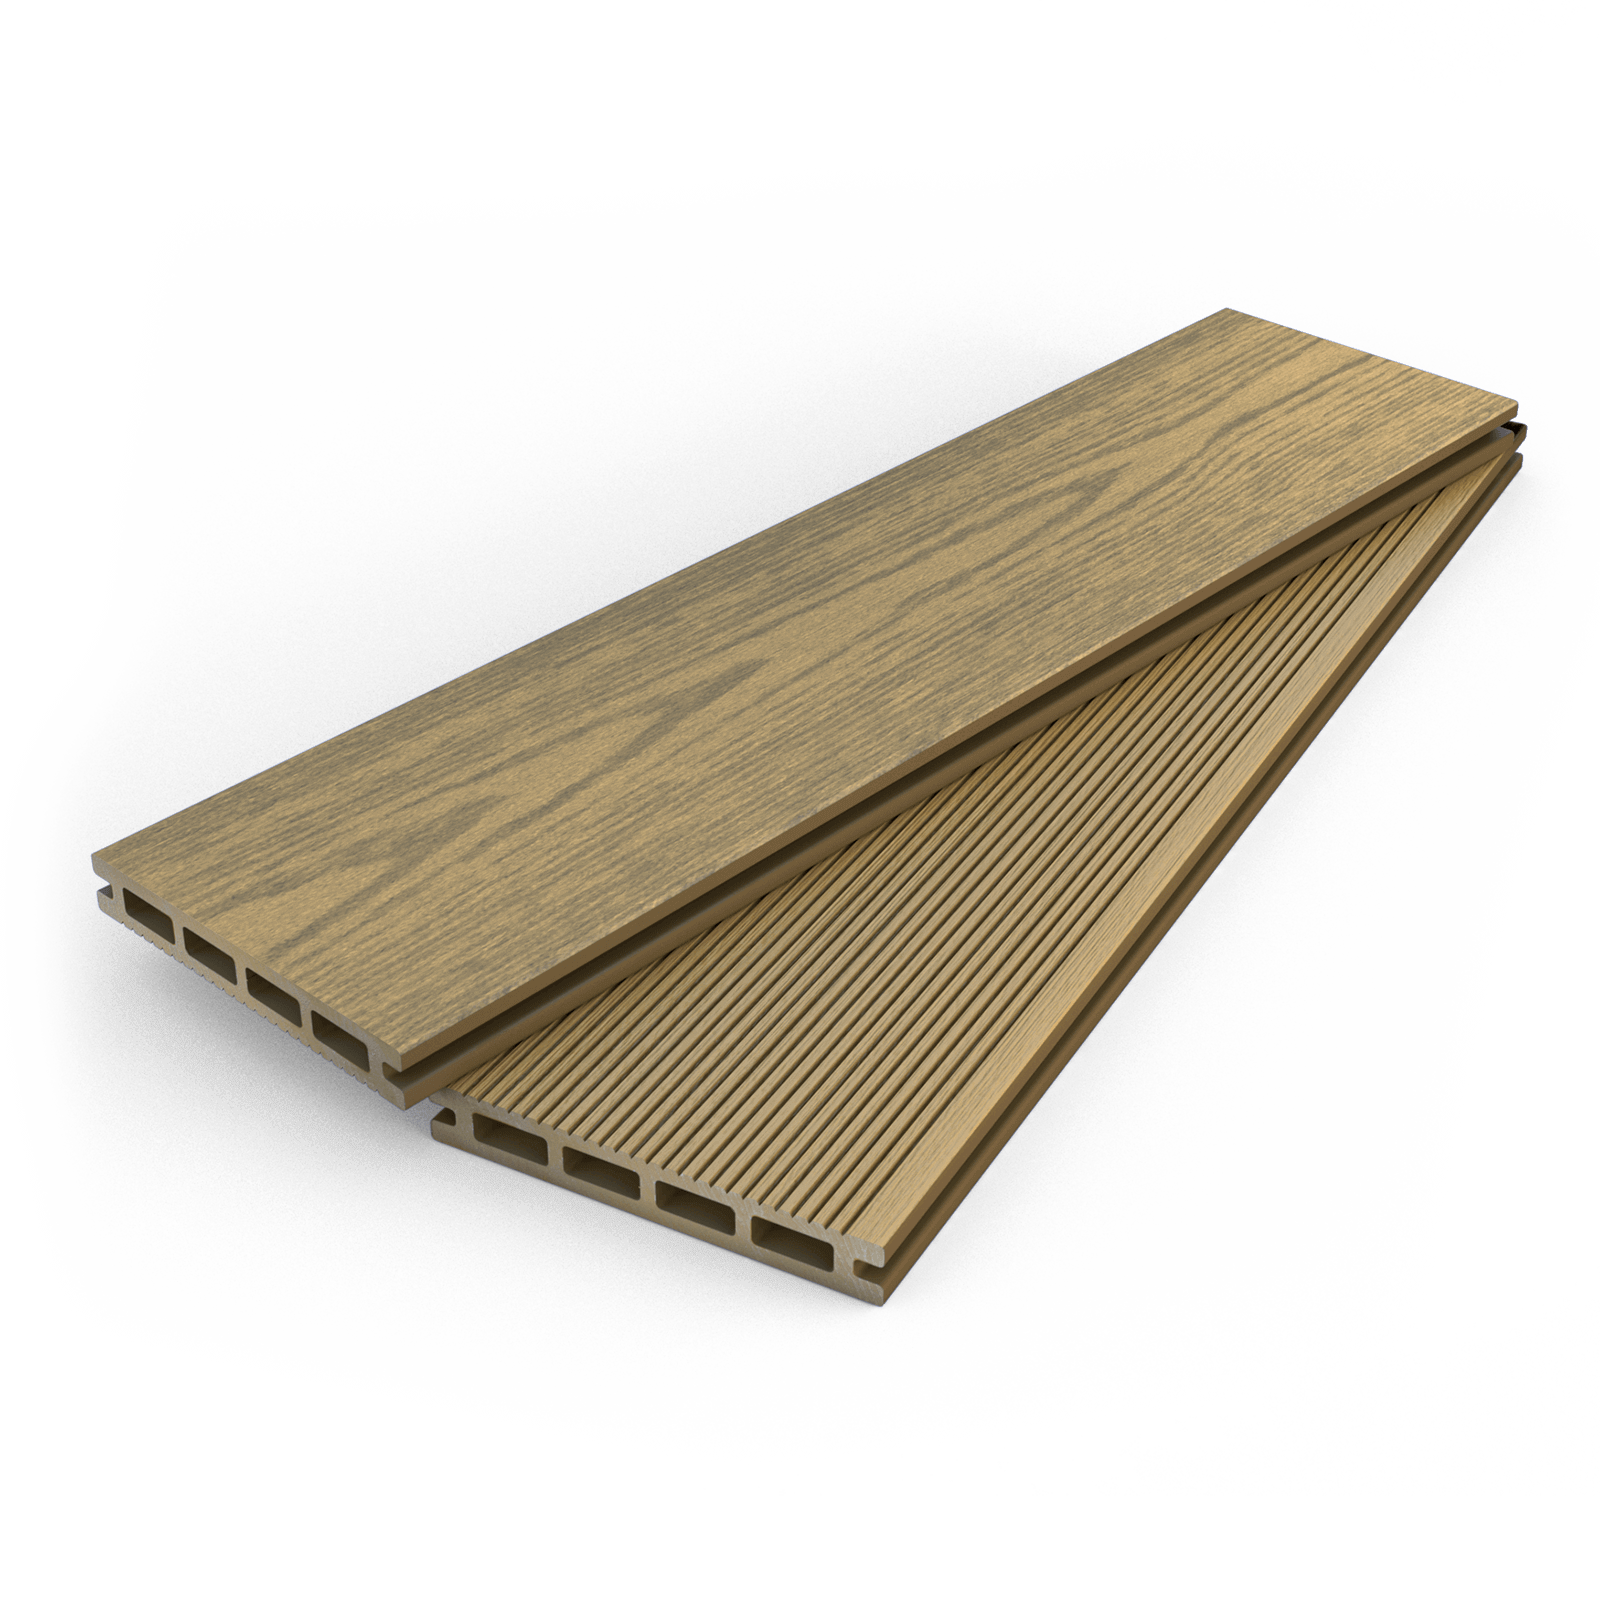 Dino decking hollow composite decking boards for Composite decking boards